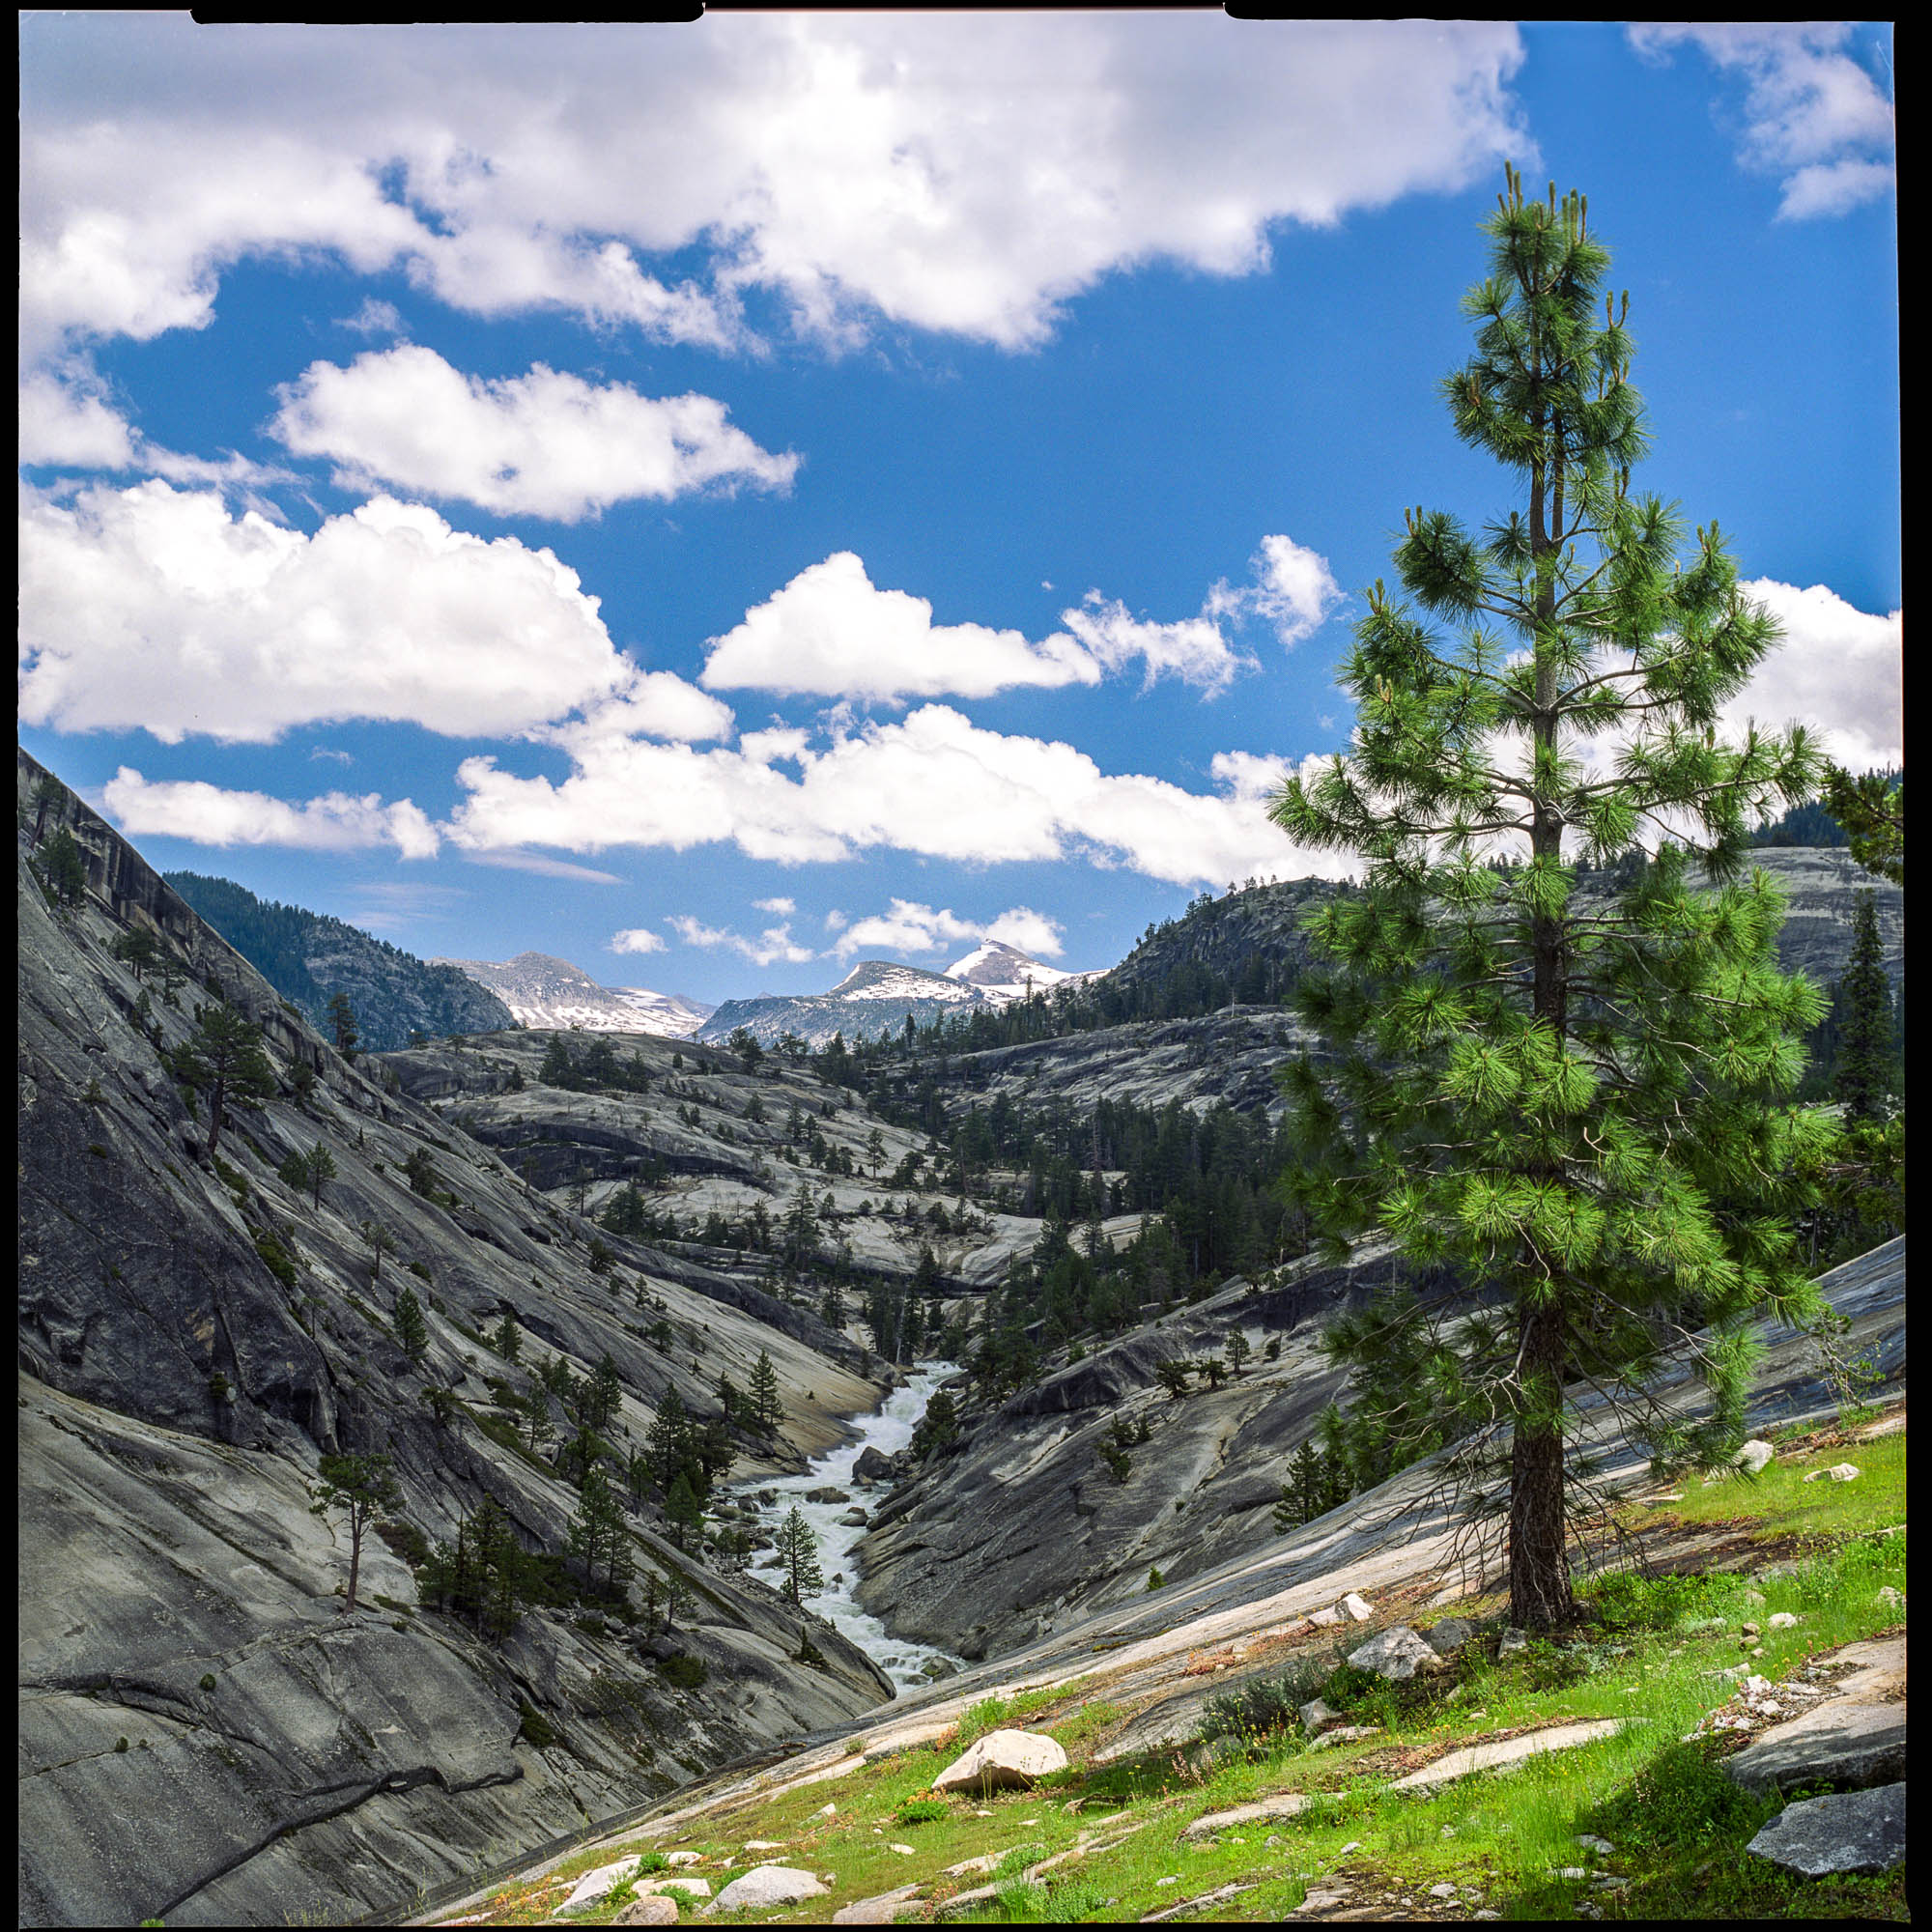 Merced River Valley - Yosemite National Park